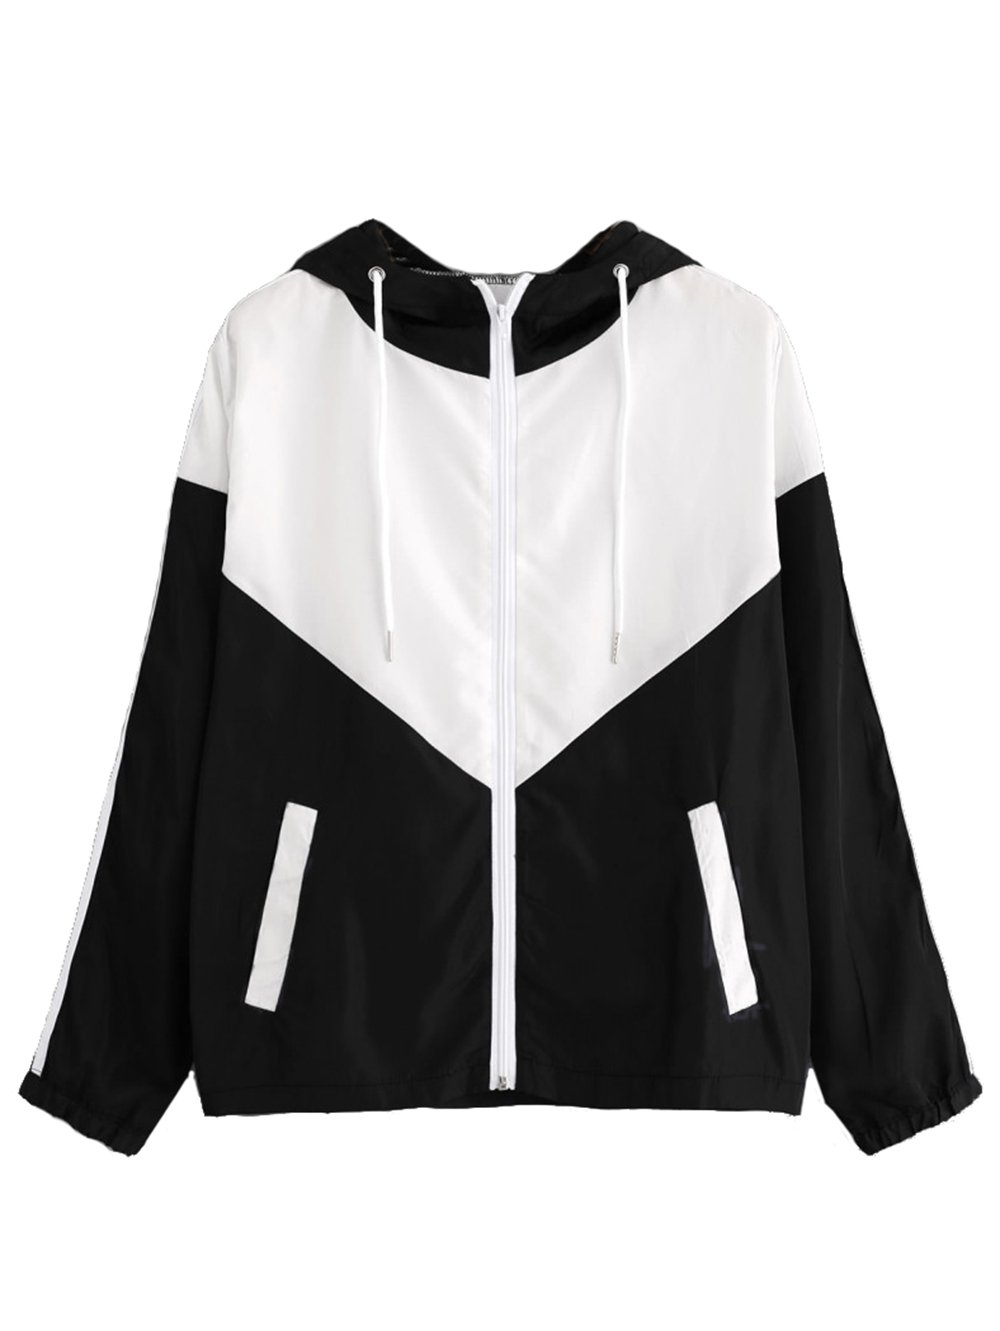 Milumia Women's Color Block Drawstring Hooded Zip up Sports Jacket Windproof Windbreaker Small White and Black-1